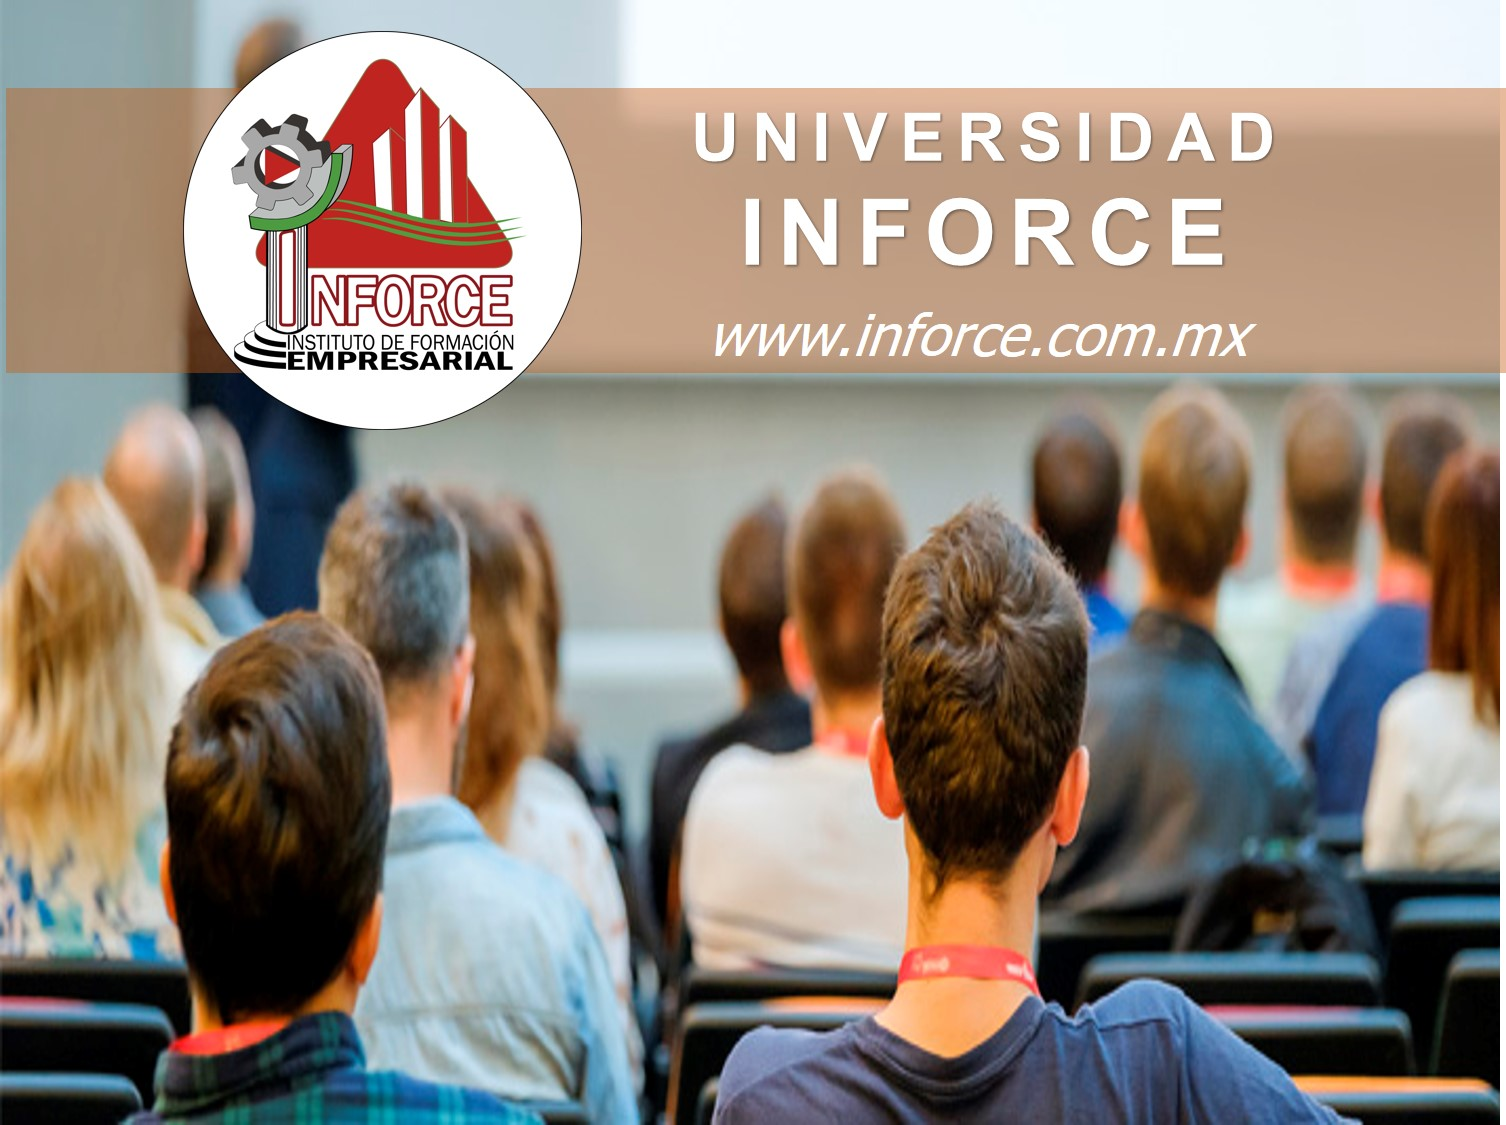 univerdidad-inforce-7.jpg